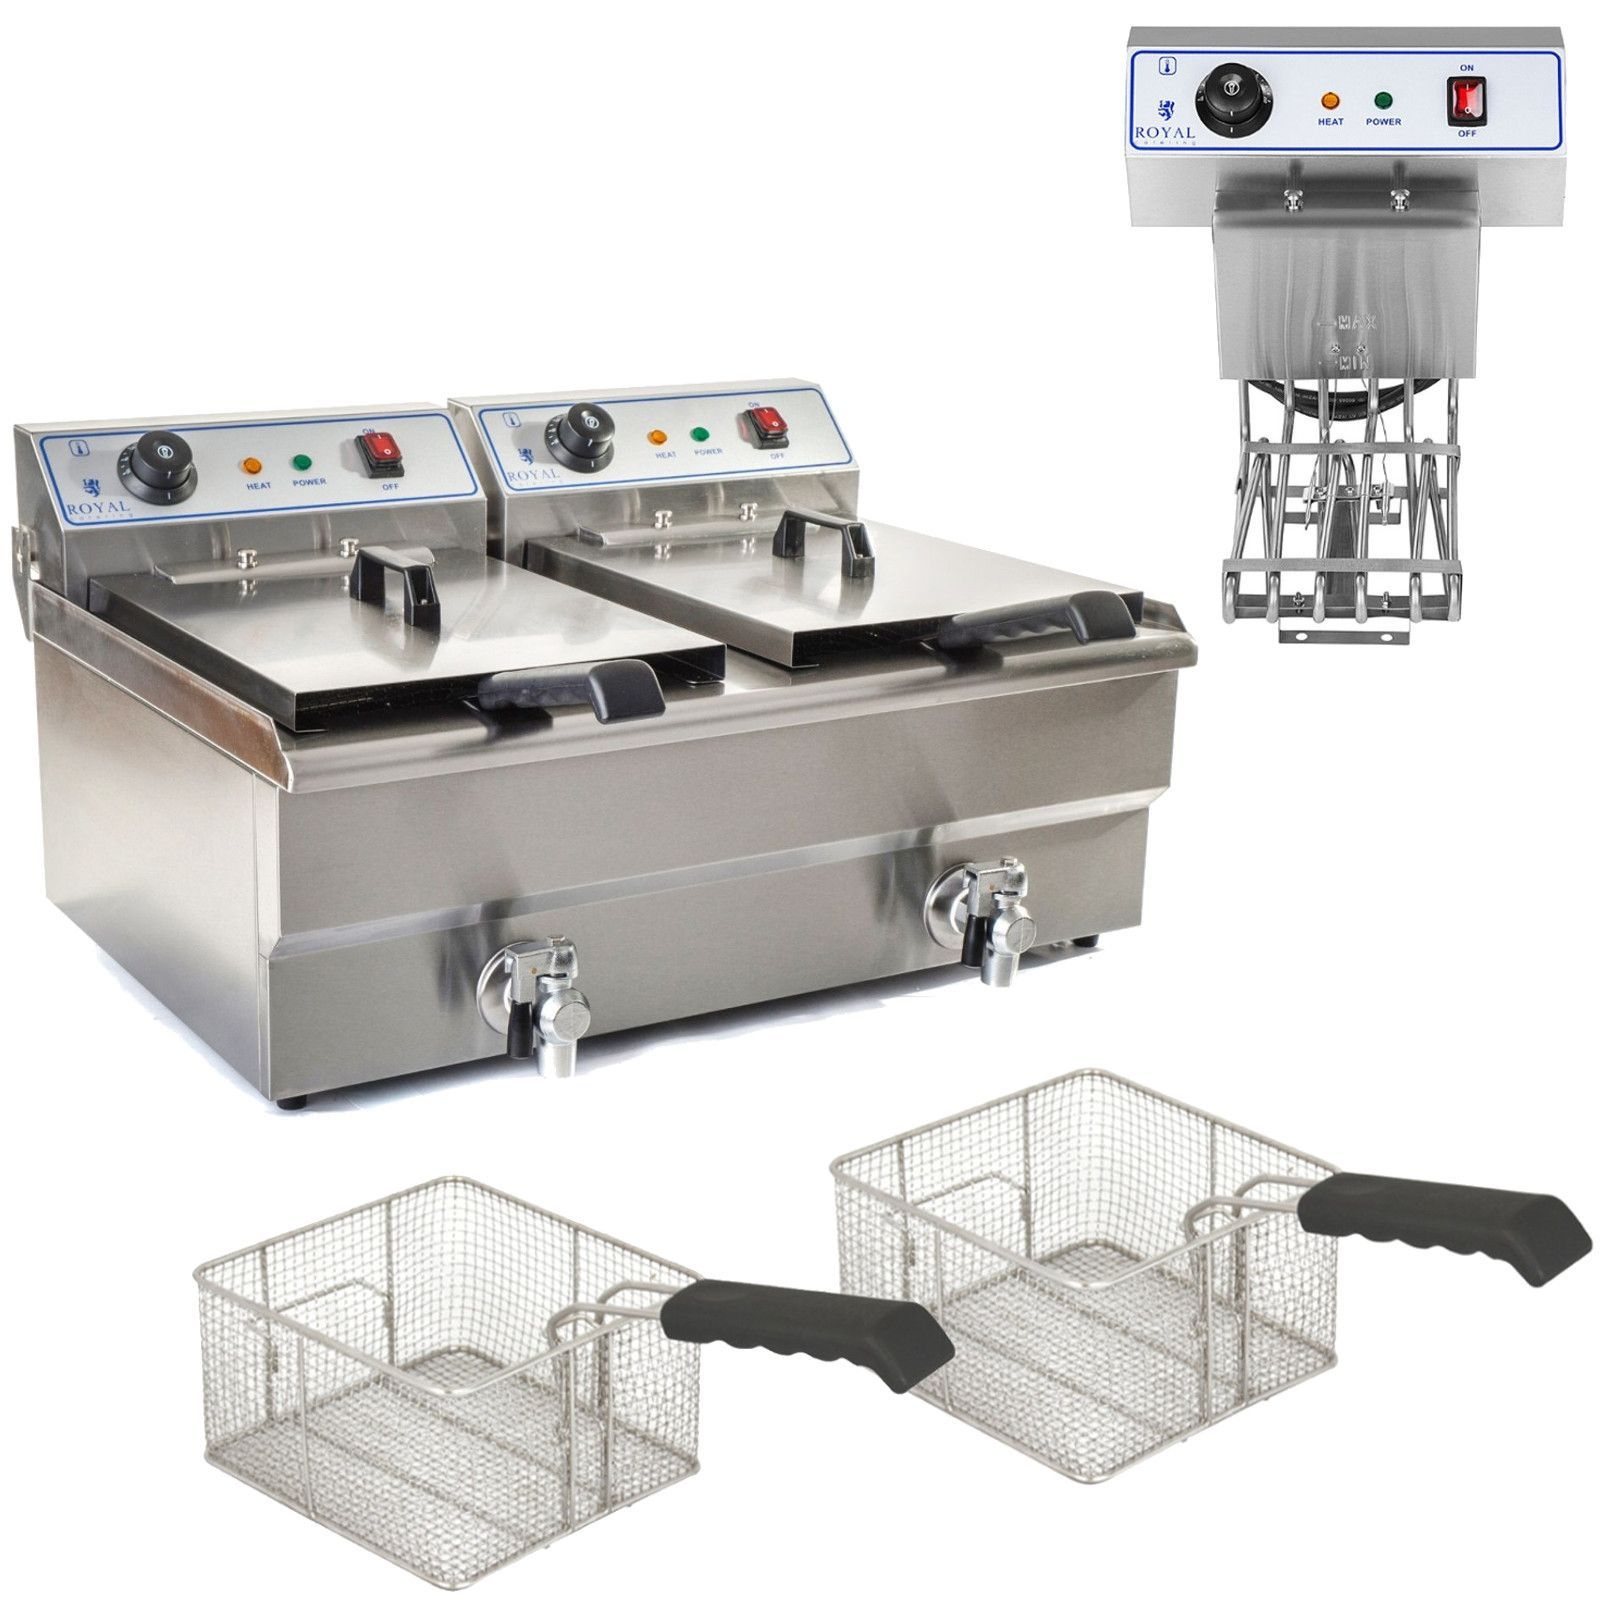 Royal Catering fritéza RCSF-16DTH